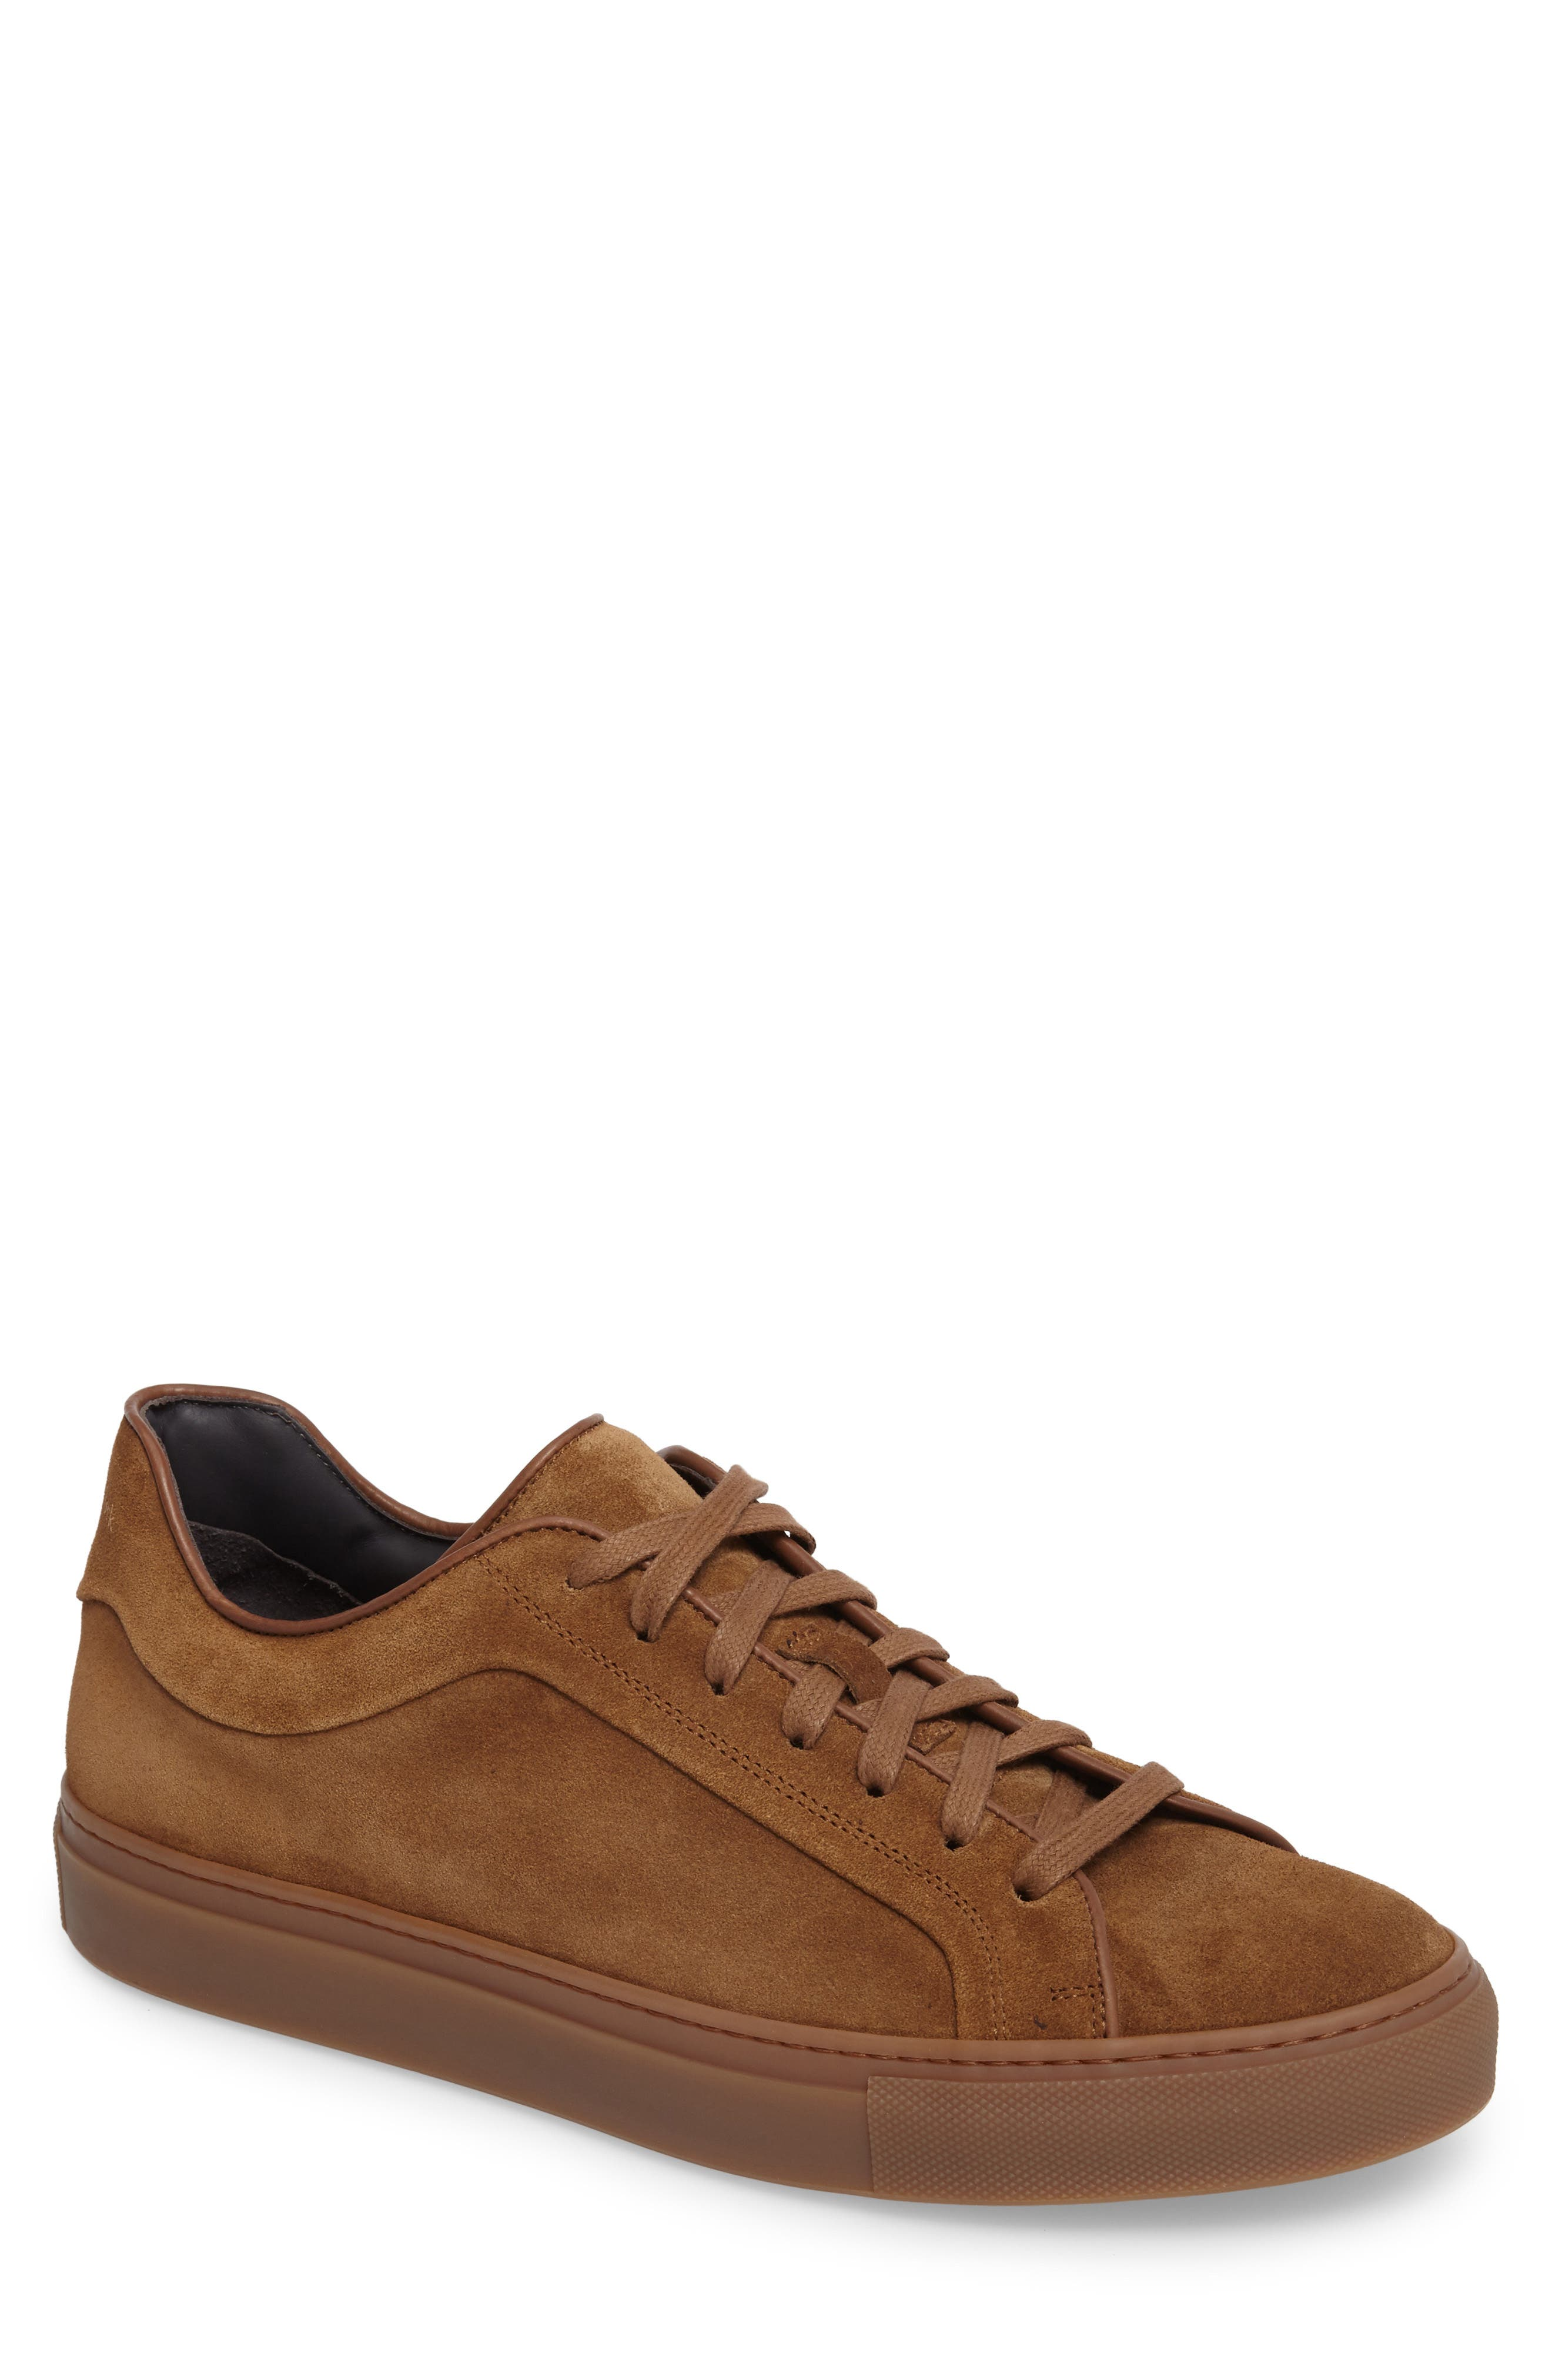 Marshall Sneaker,                             Main thumbnail 1, color,                             Brown Suede Leather